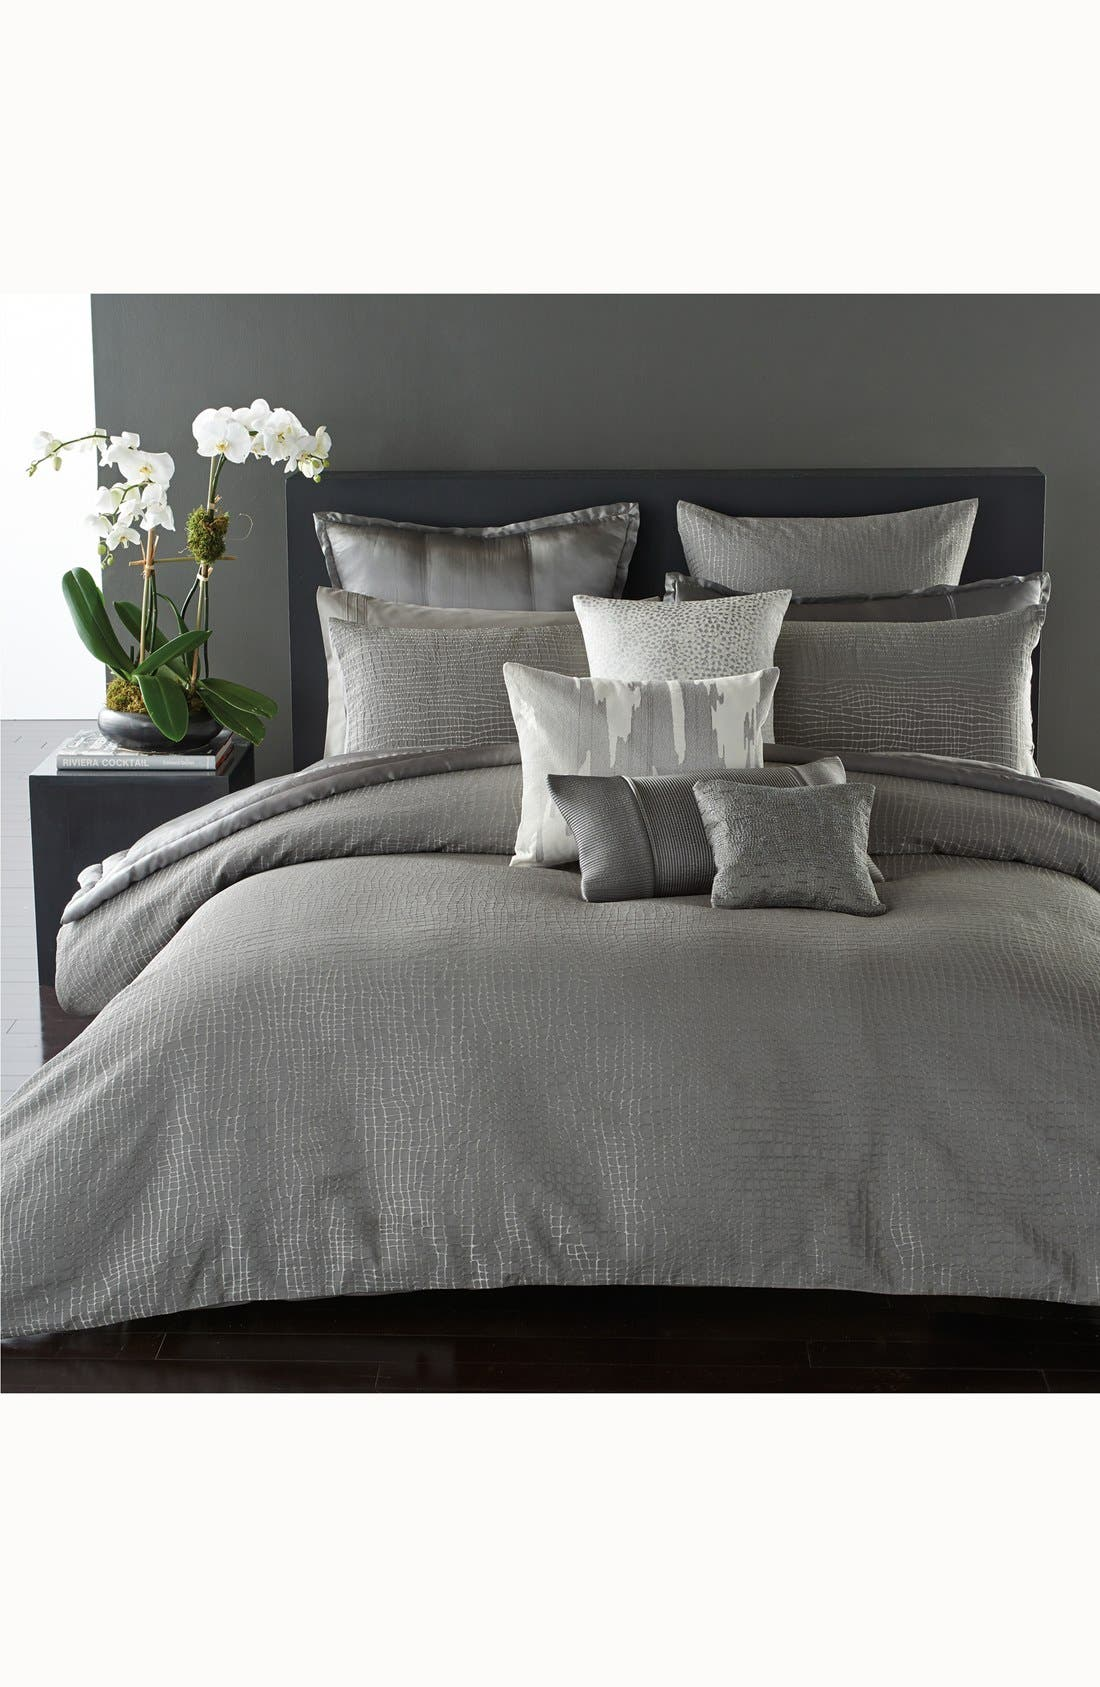 Alternate Image 1 Selected - Donna Karan Collection 'Surface' Duvet Cover